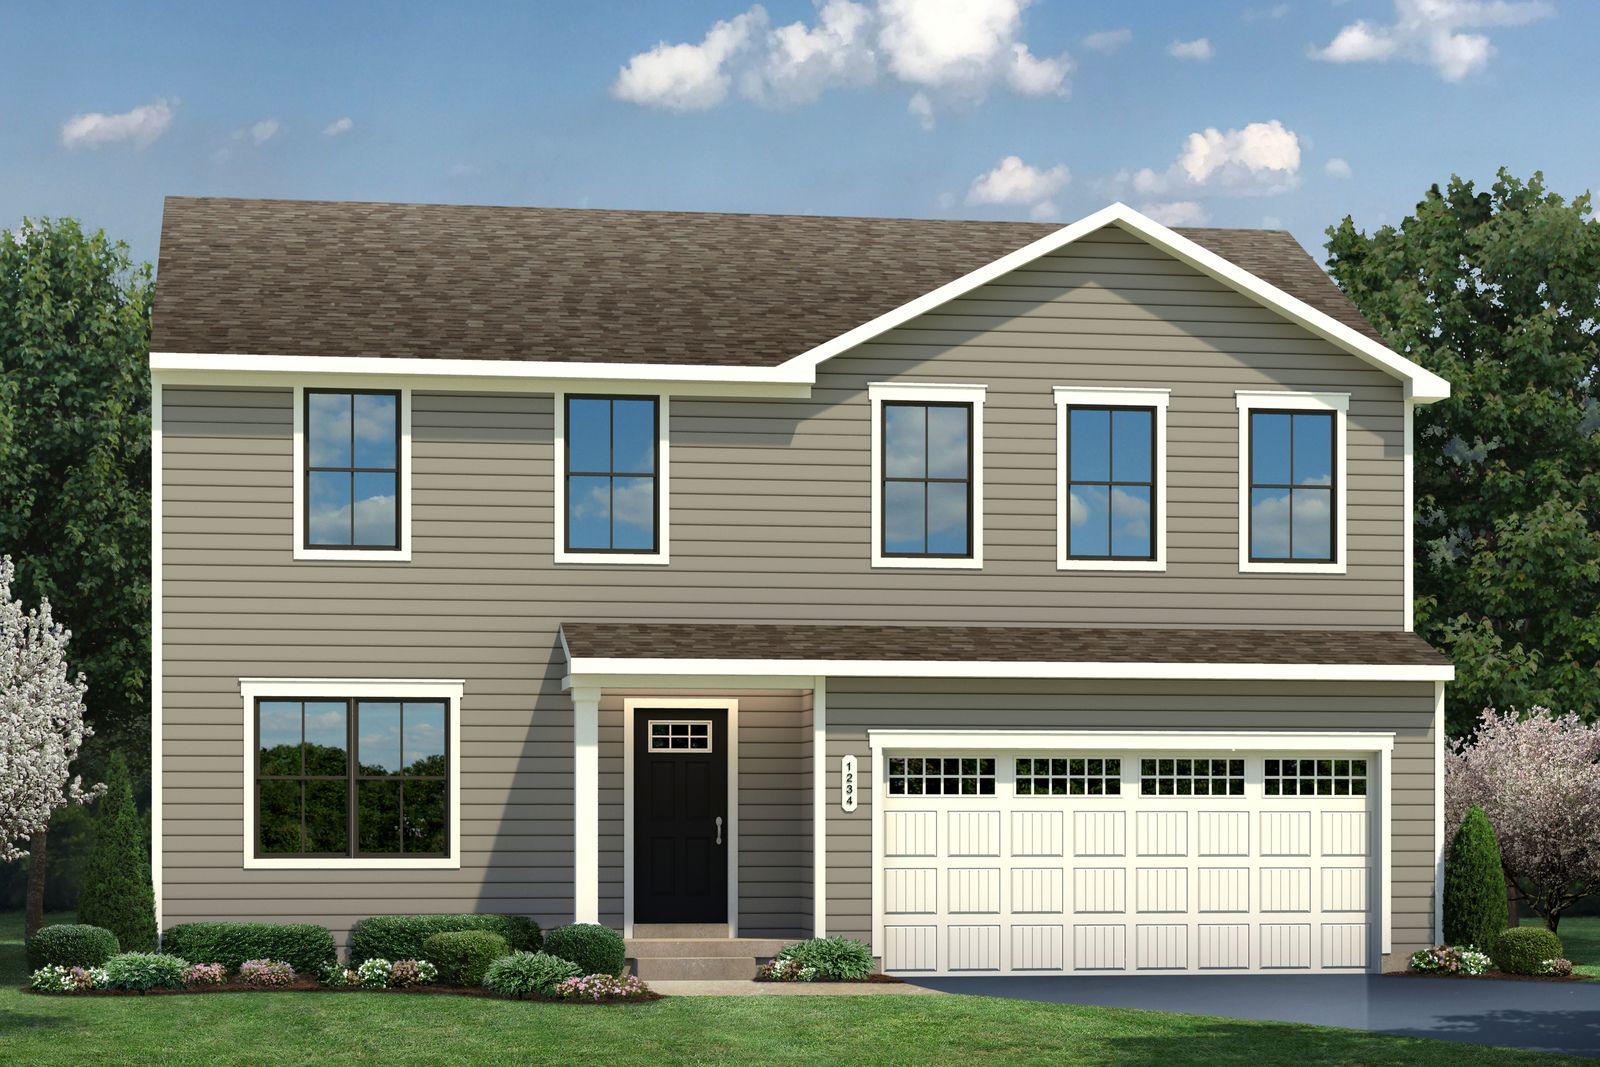 Ryan Homes New Home Plans in a TN | NewHomeSource on